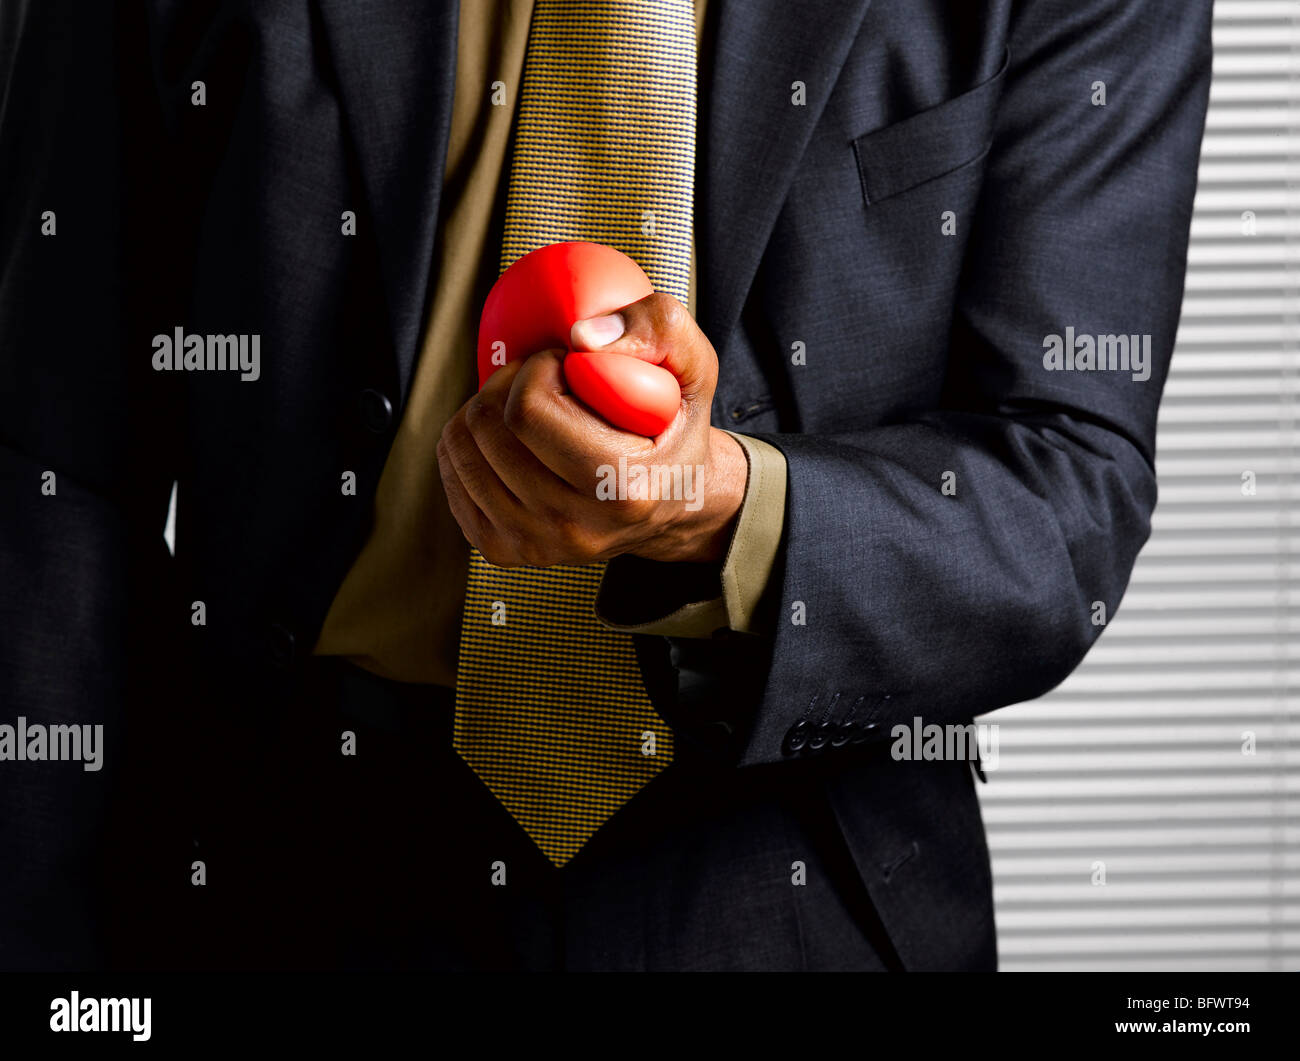 Business man squeezing stress ball - Stock Image